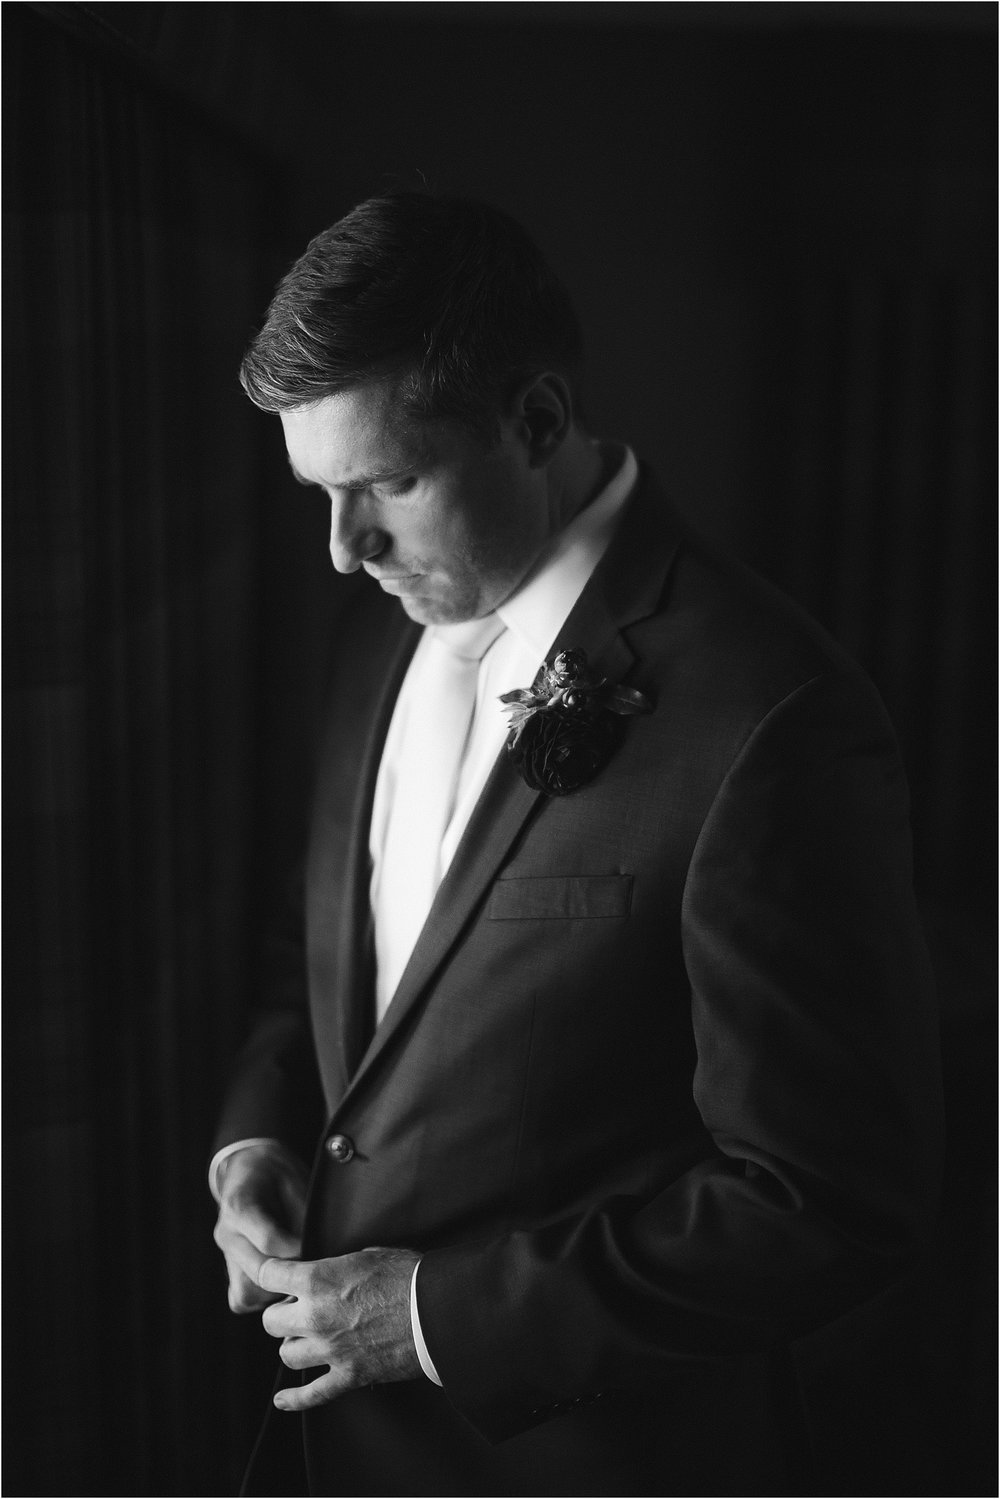 Black and white image of a groom